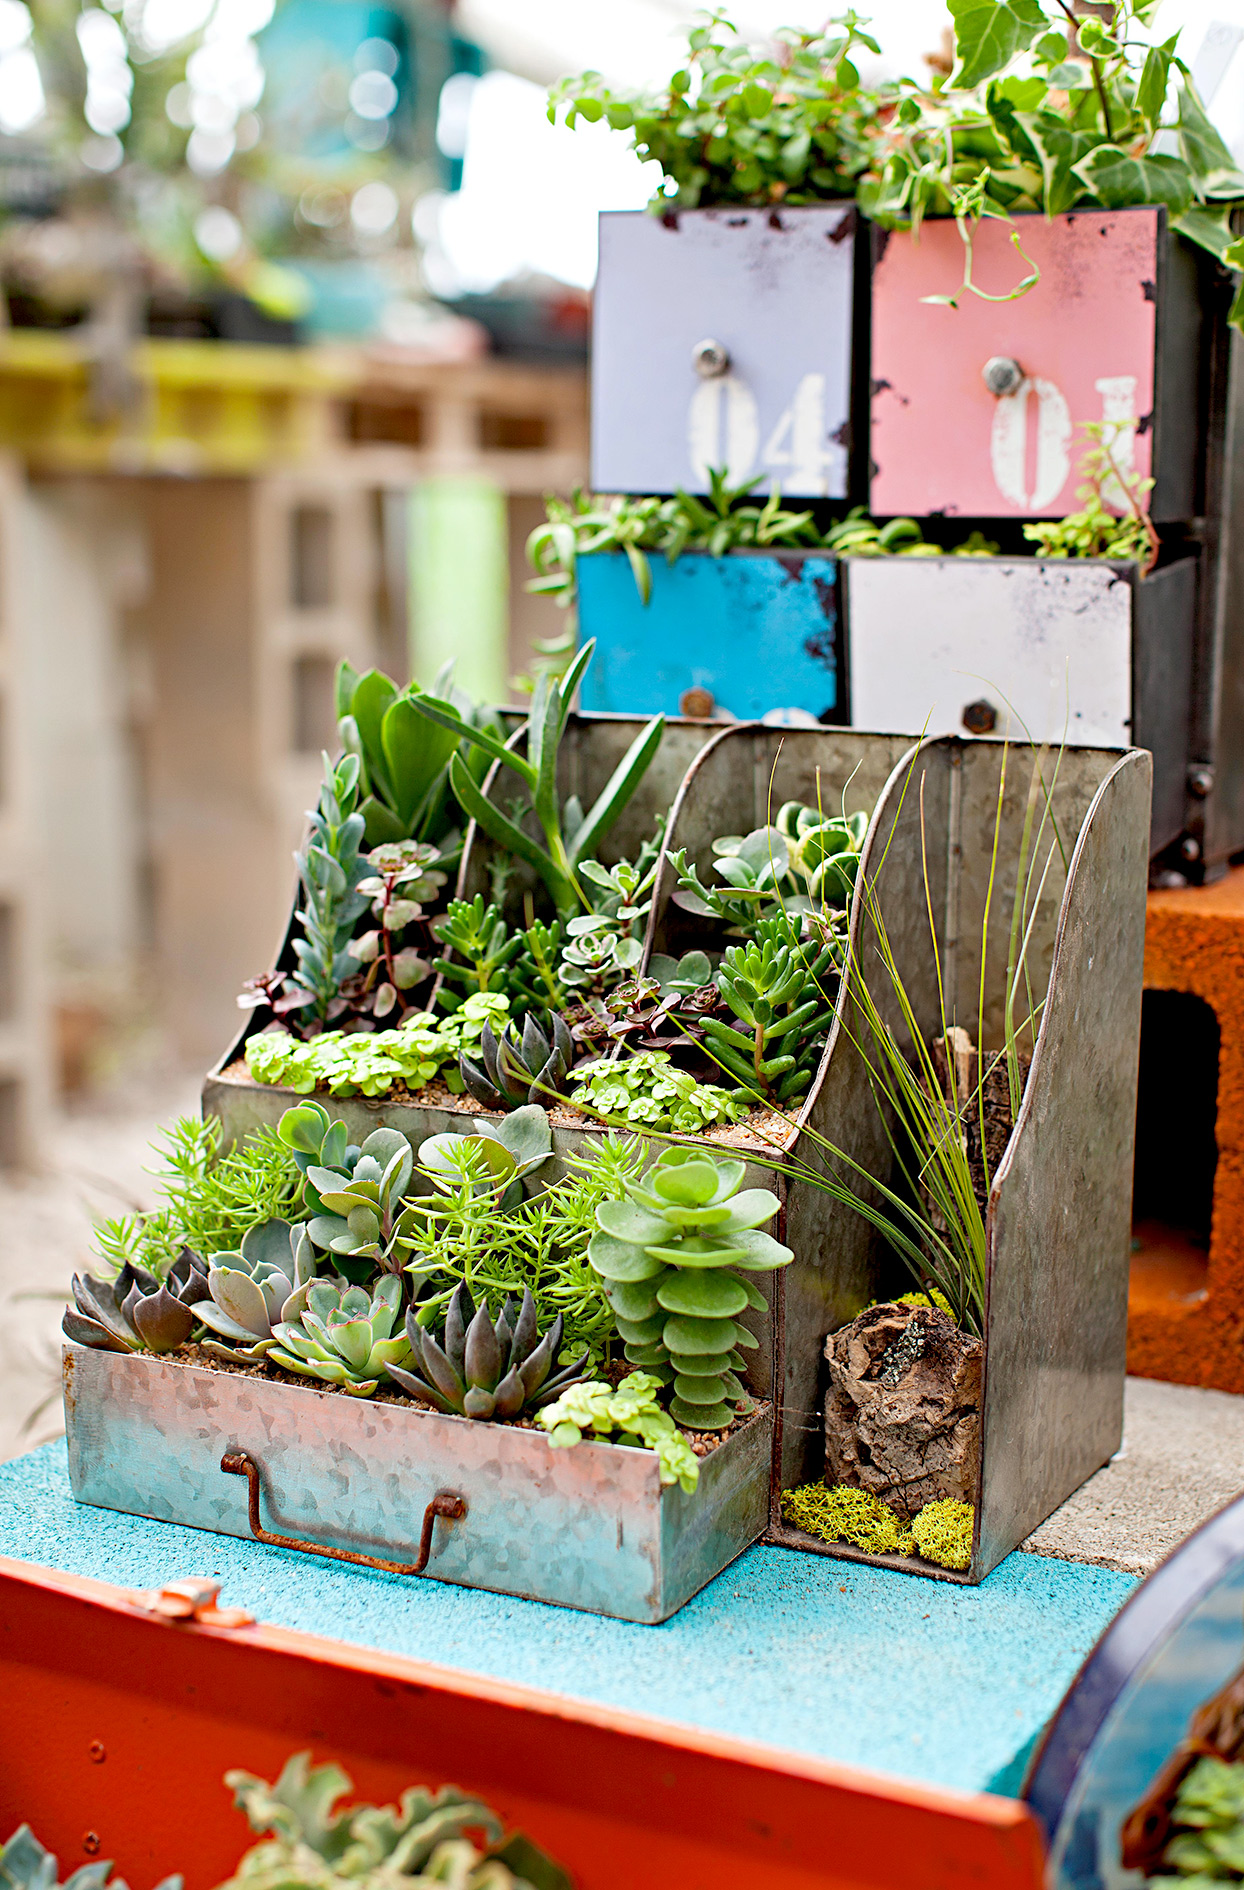 Desk caddy used as planter